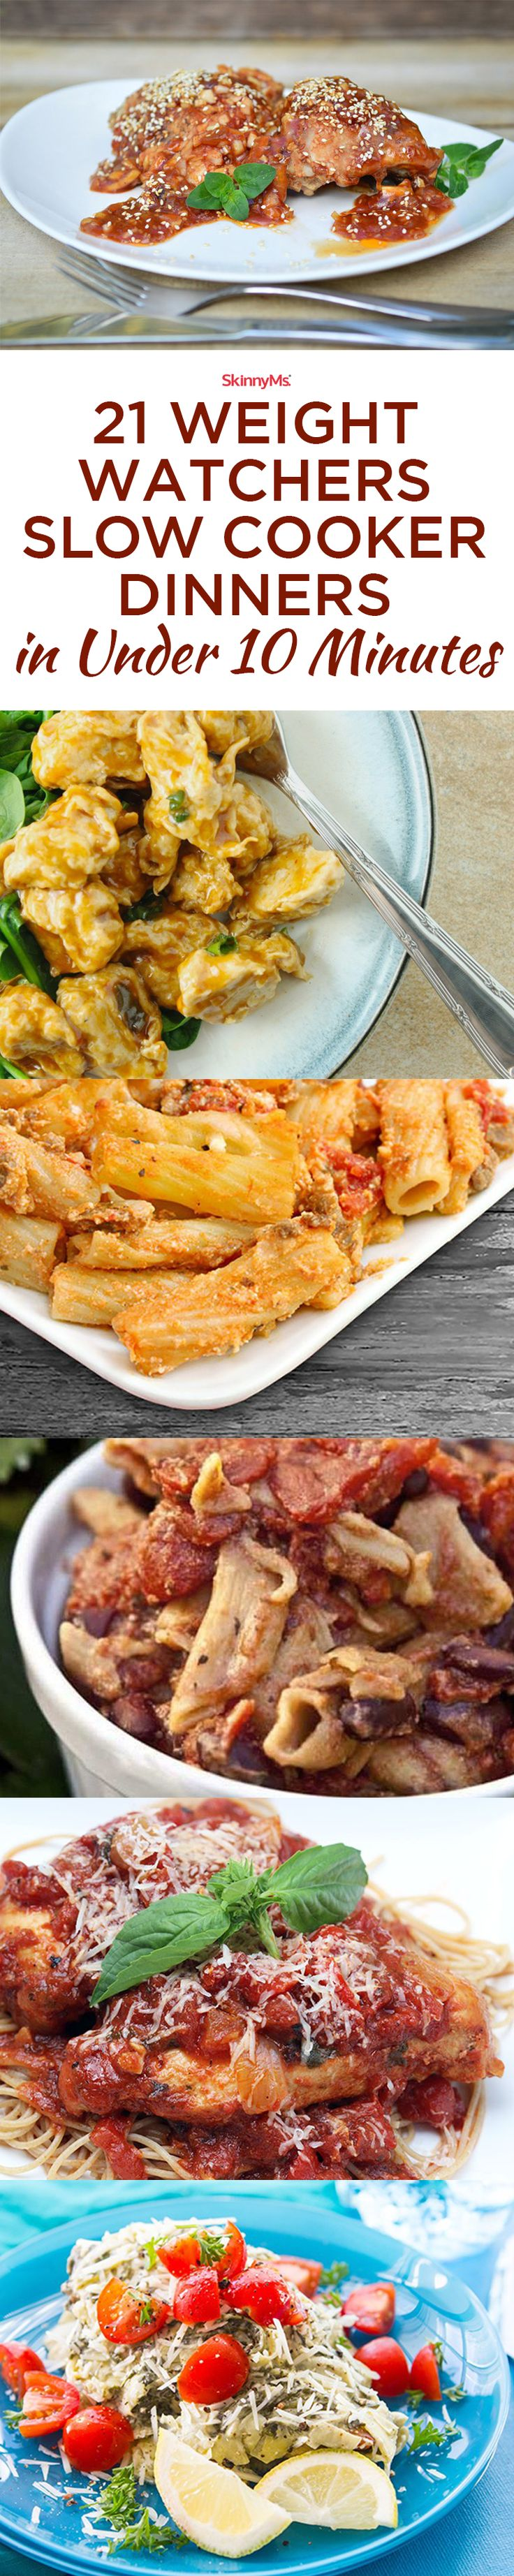 Ty these Quick and easy Weight Watchers dinners that won't break your point budget!